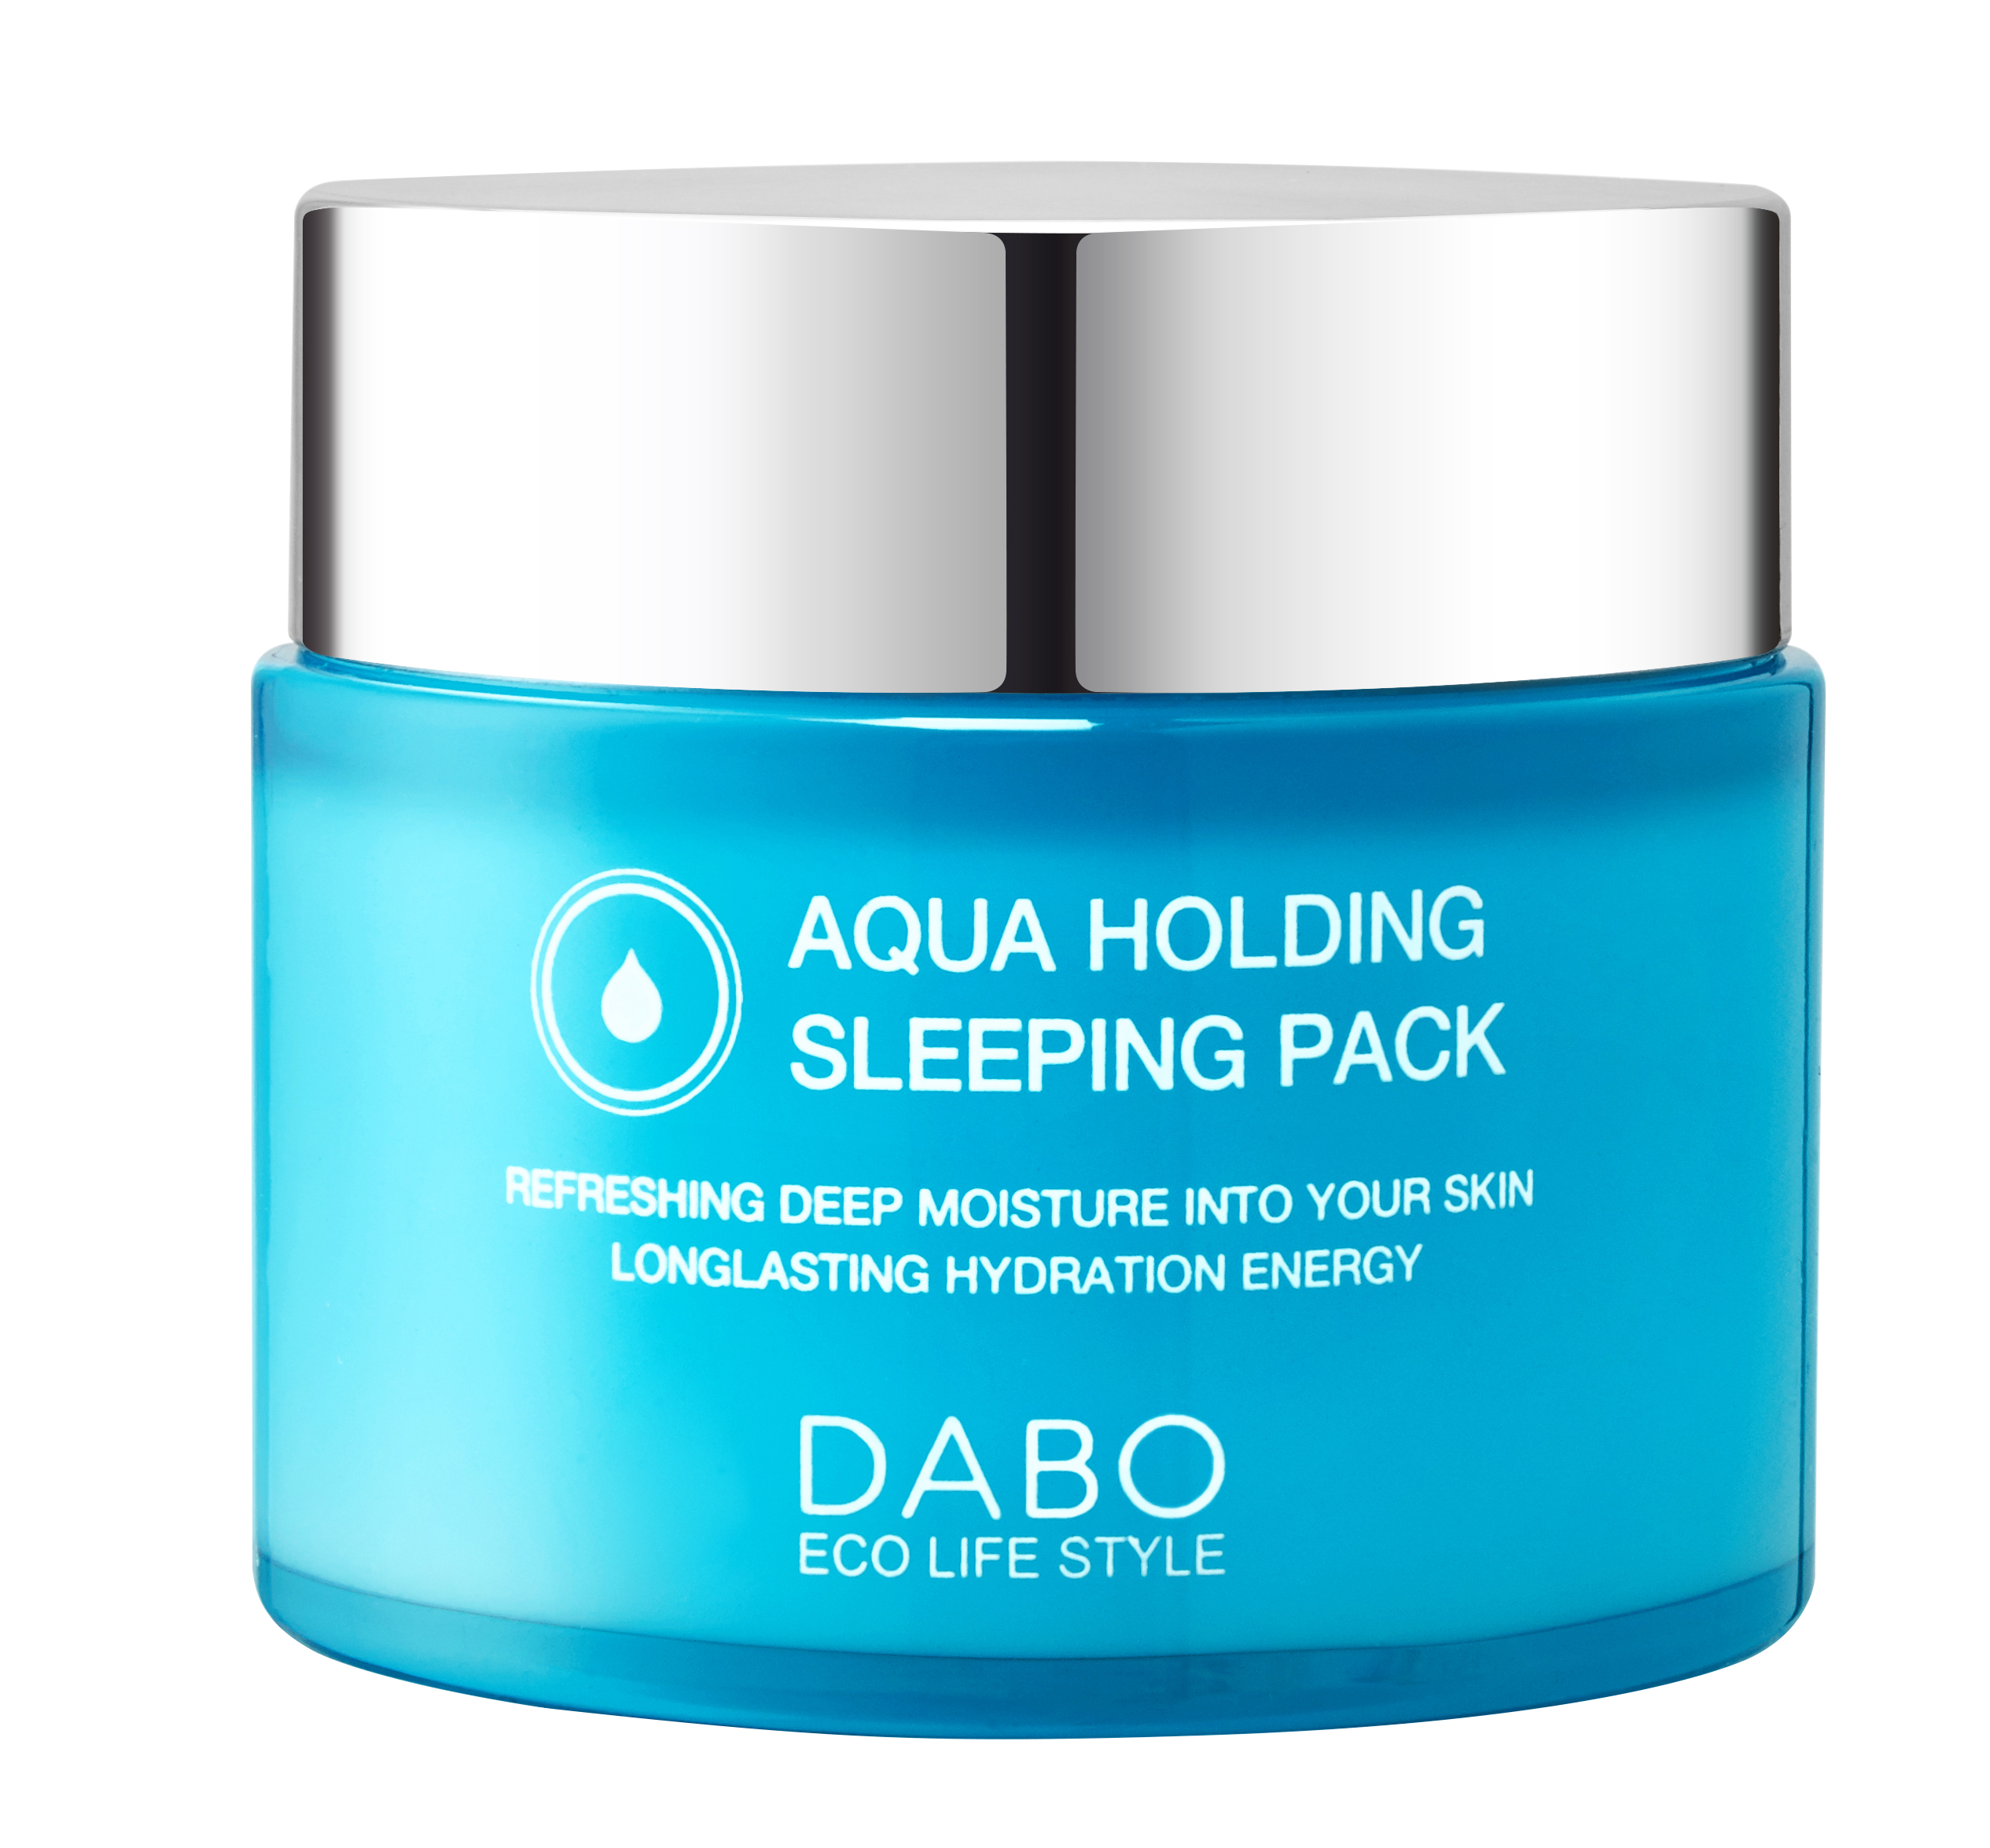 DABO AQUA HOLDING SLEEPING PACK